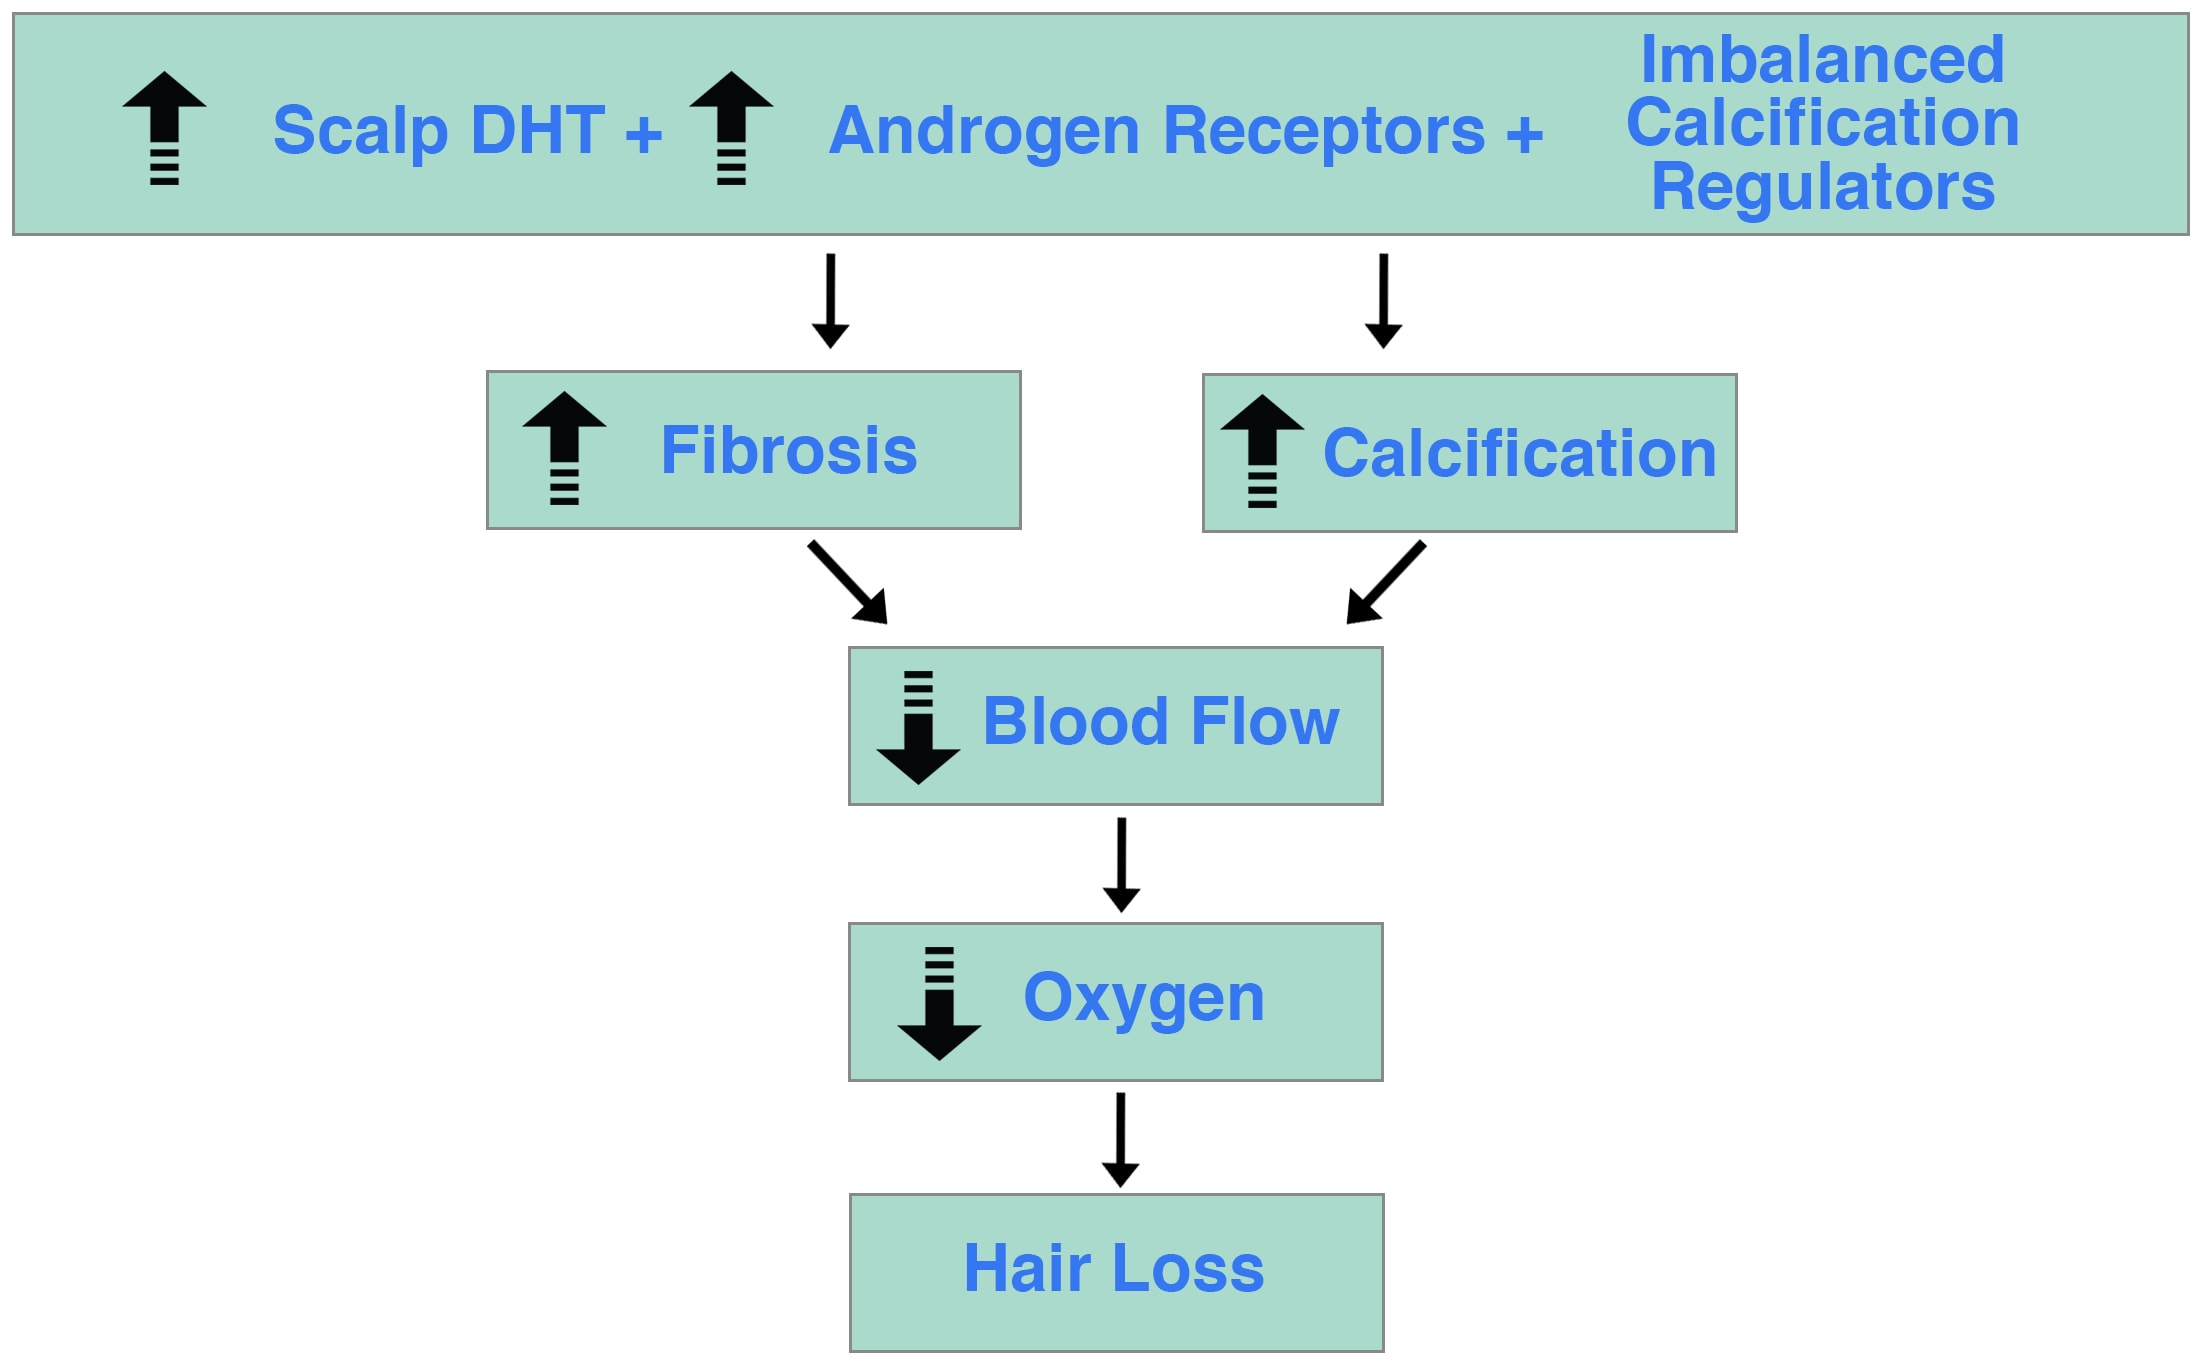 DHT Androgen Receptors Imbalanced Calcification Regulators Hair Loss